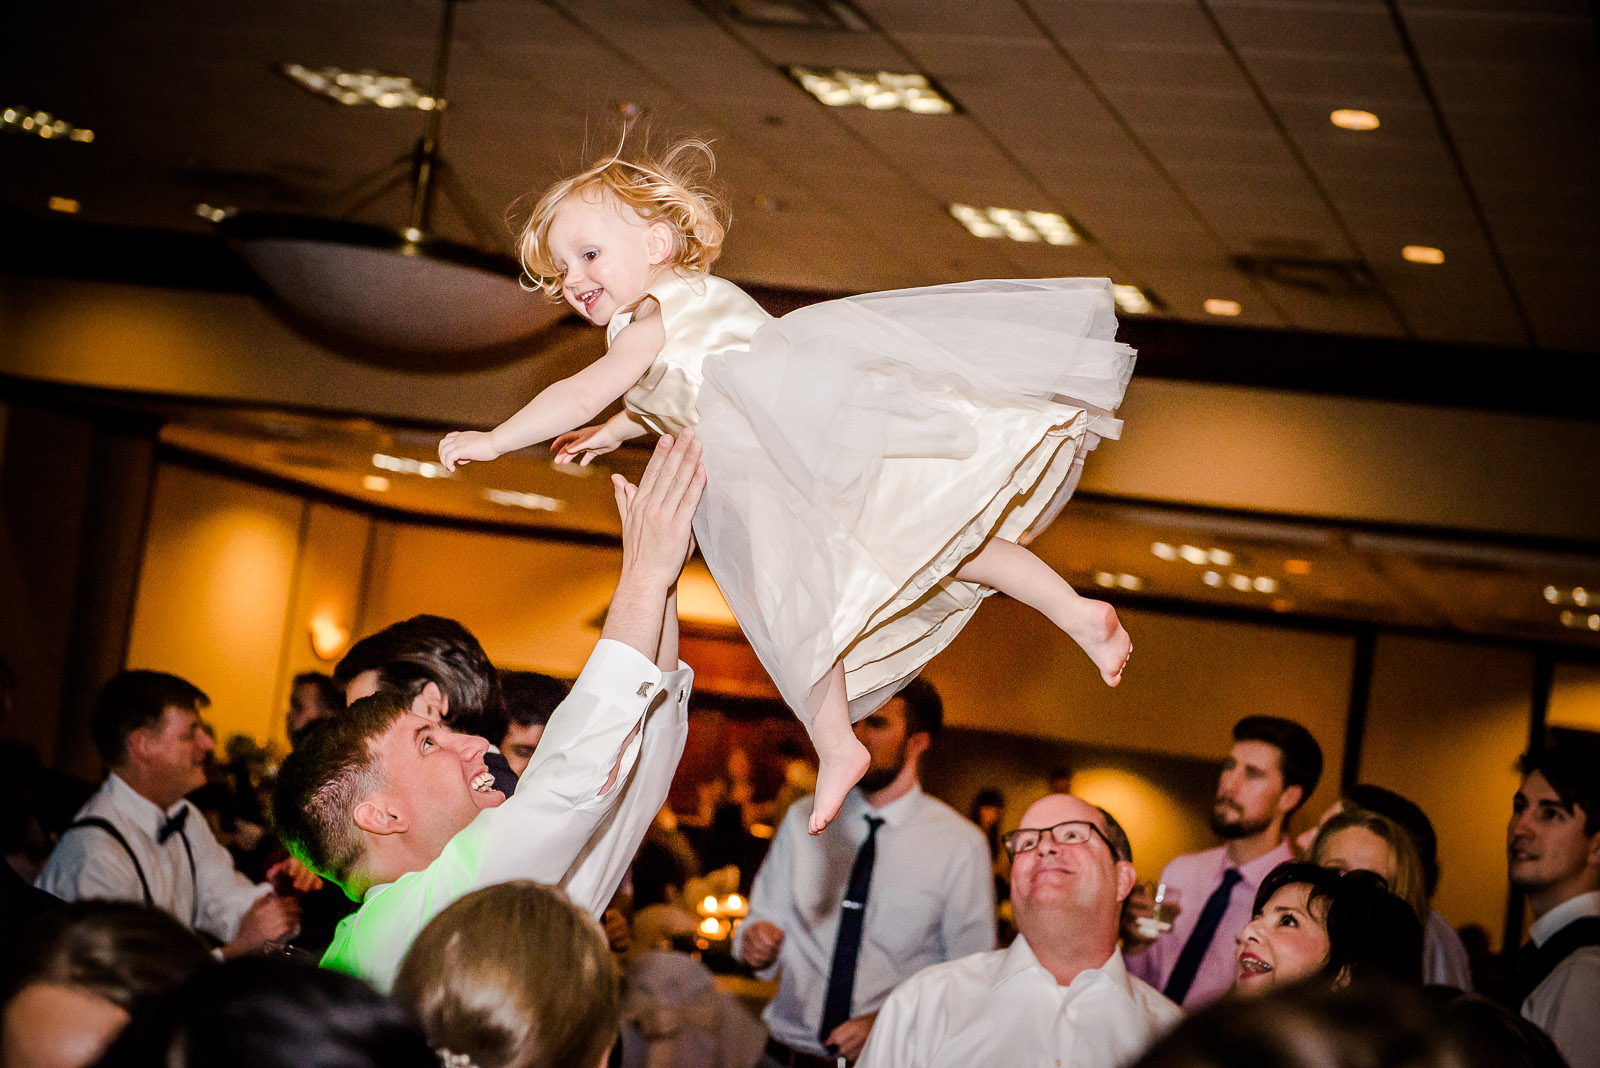 Eric_and_Christy_Photography_Blog_Wedding_Erica_Mike-82